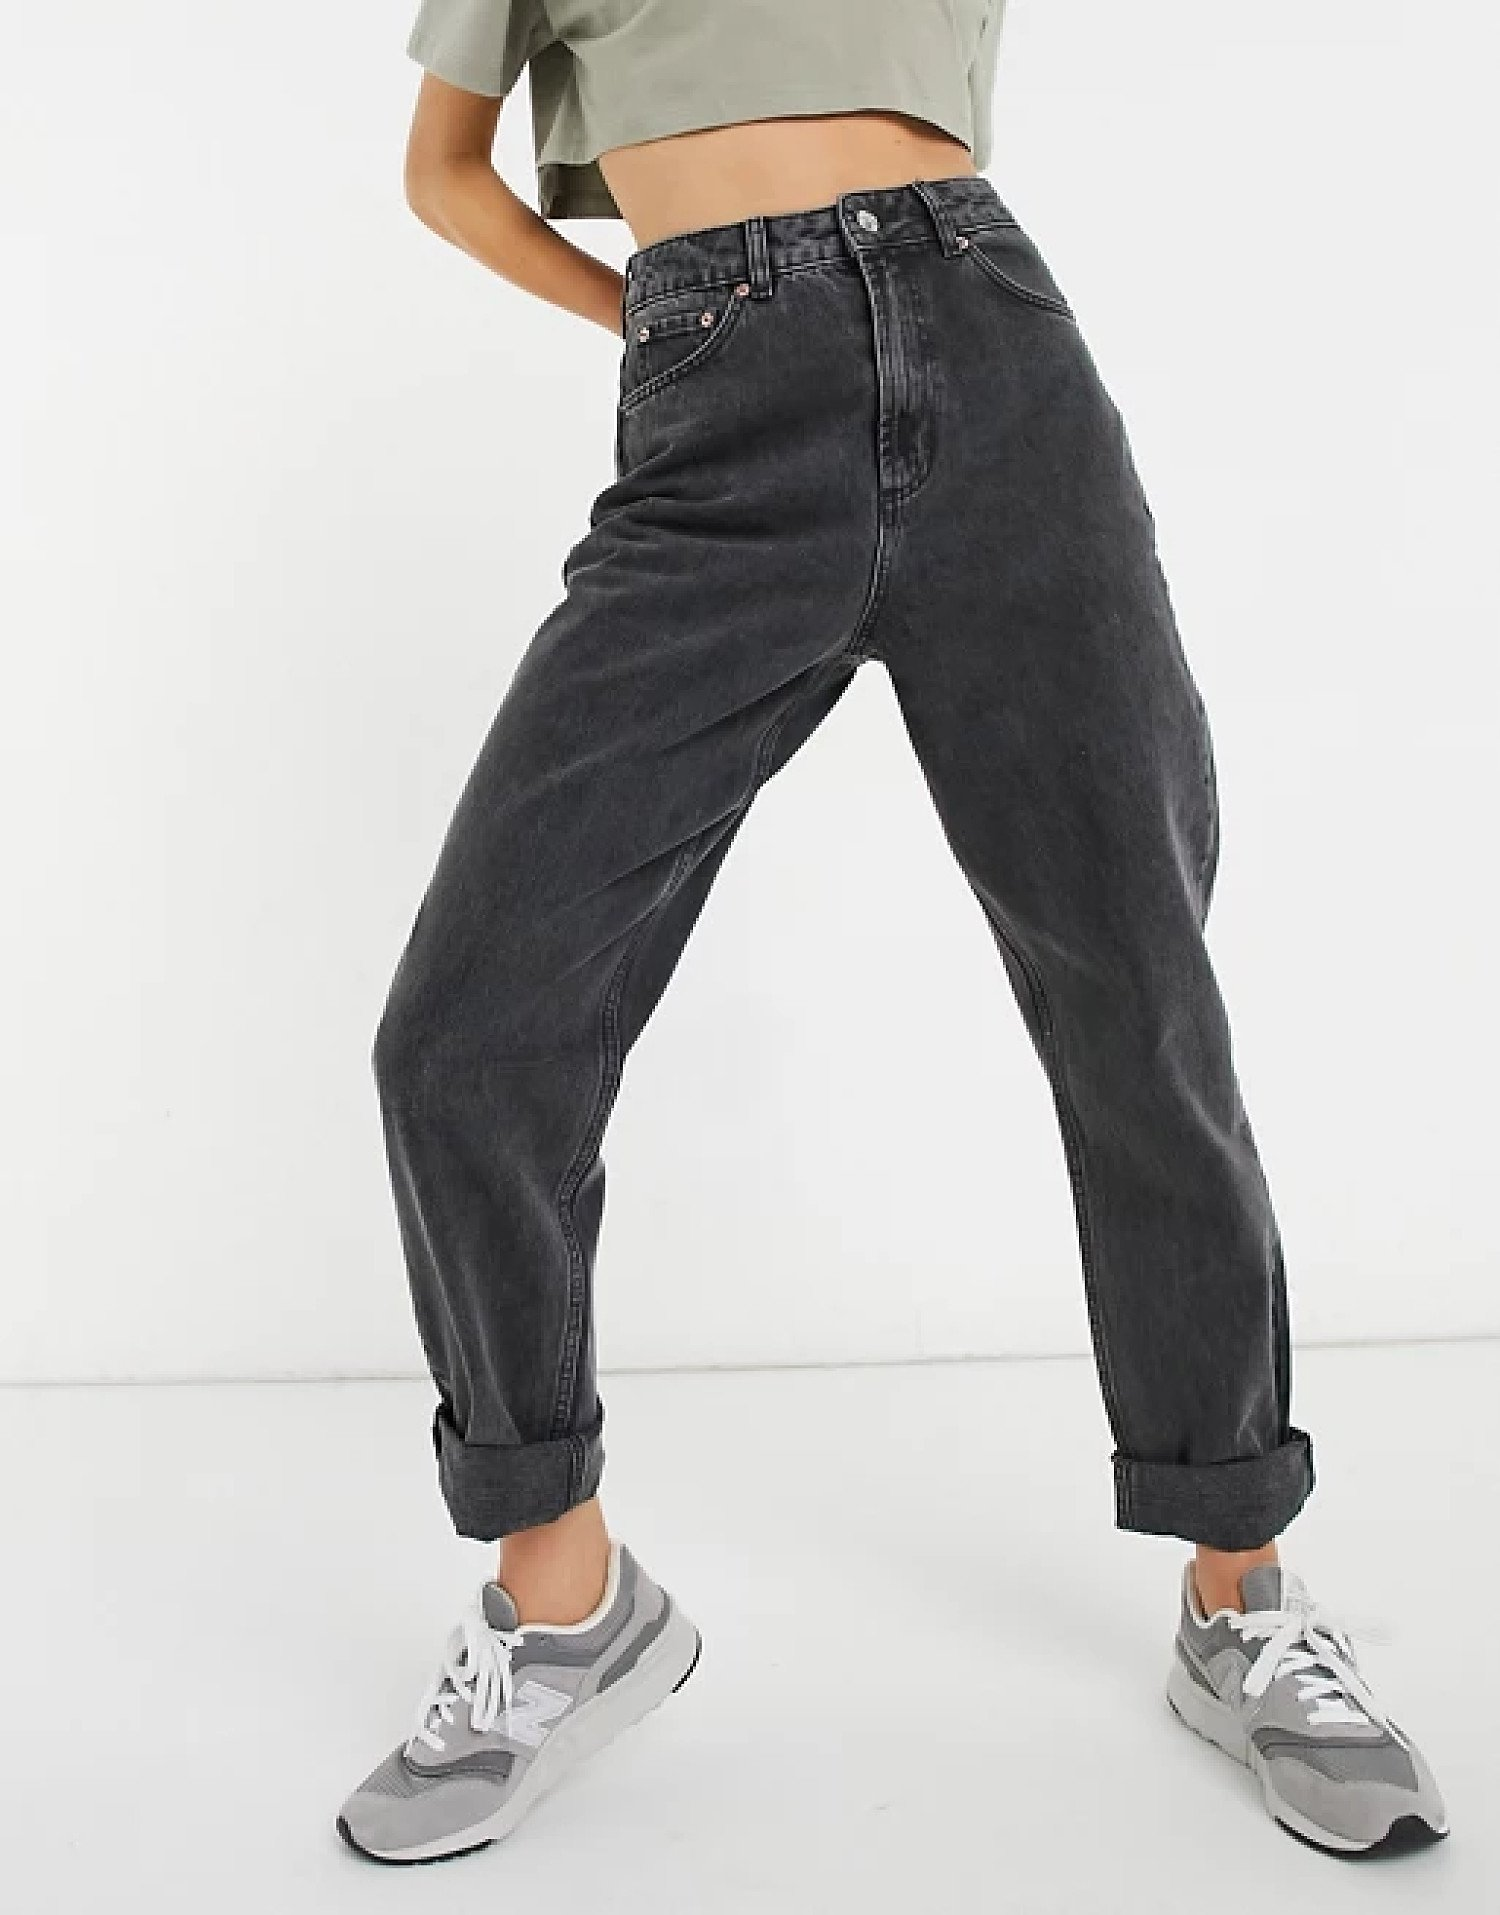 ASOS DESIGN high rise 'slouchy' mom jeans in washed black: £32.00!